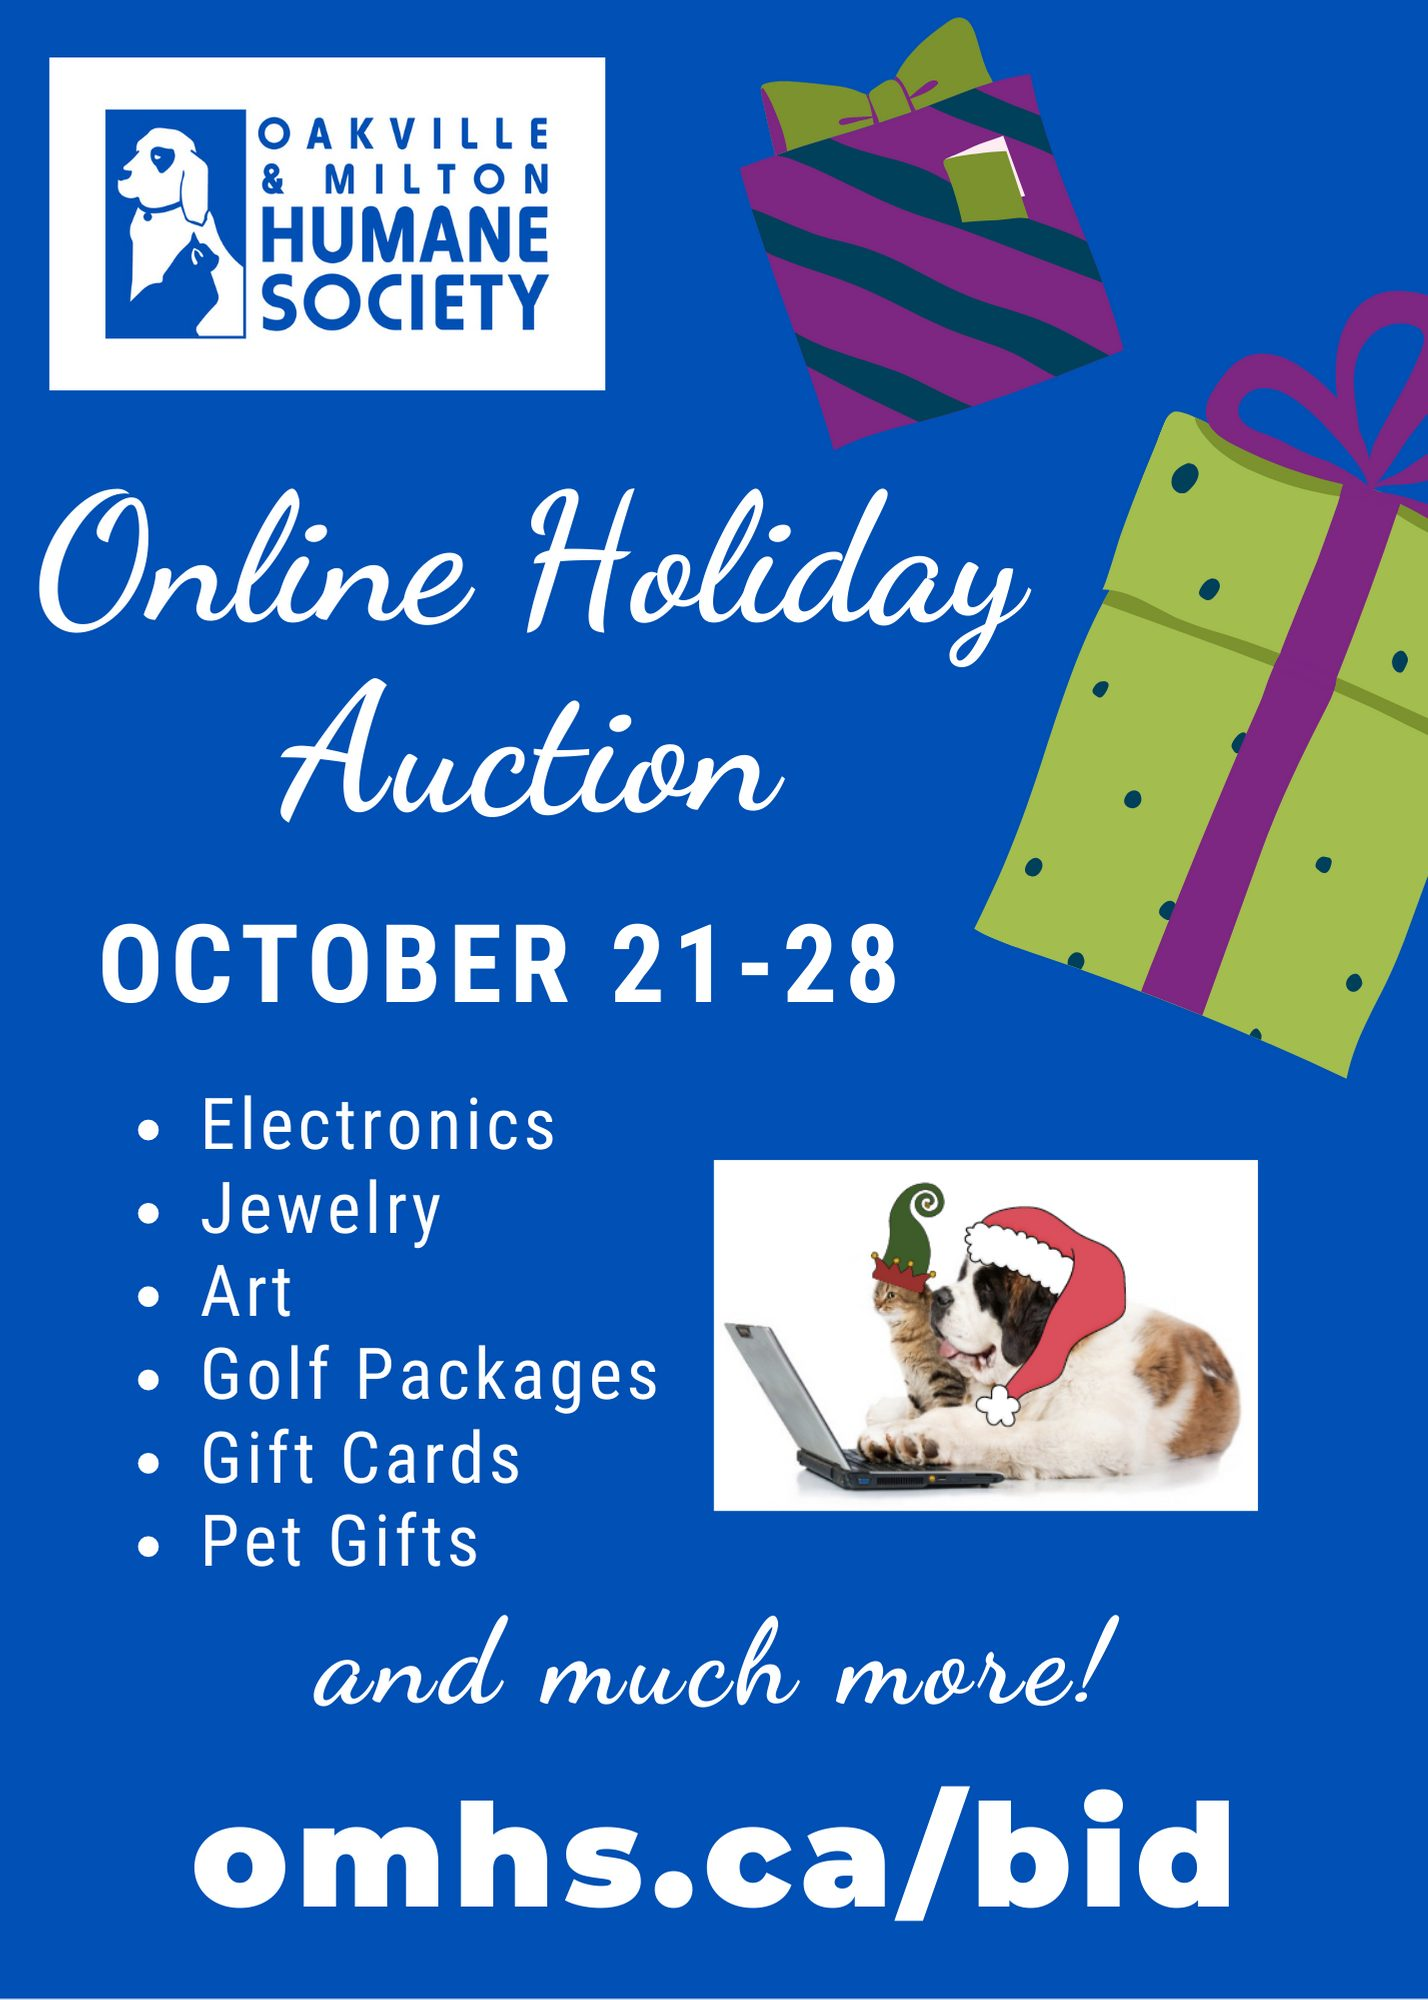 Auction Promo image - Online Holiday Auction - Coming Soon!